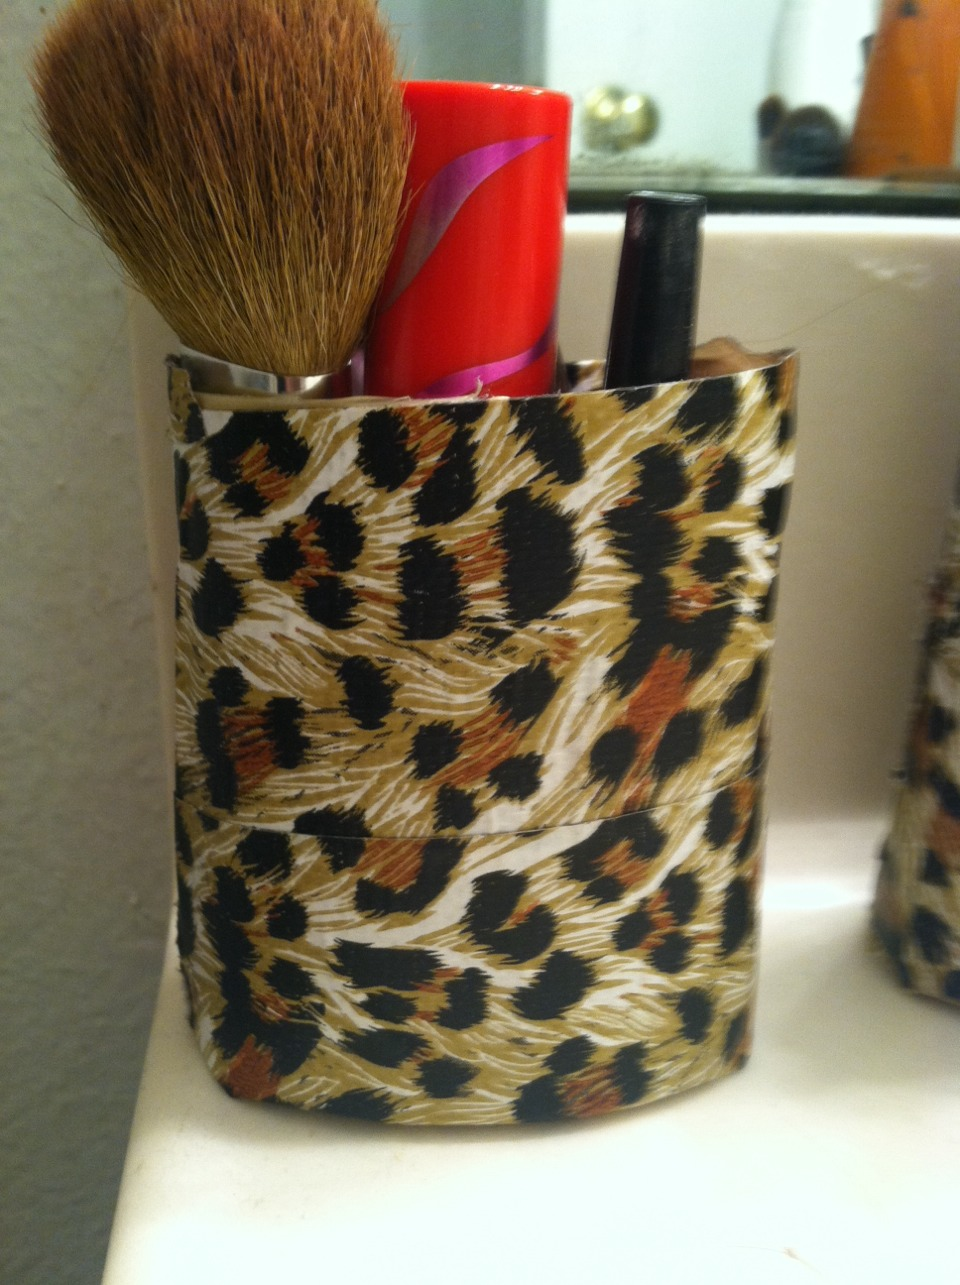 Wrap the tape around the bottle and then there you go a cute way to told your make up or your brushes